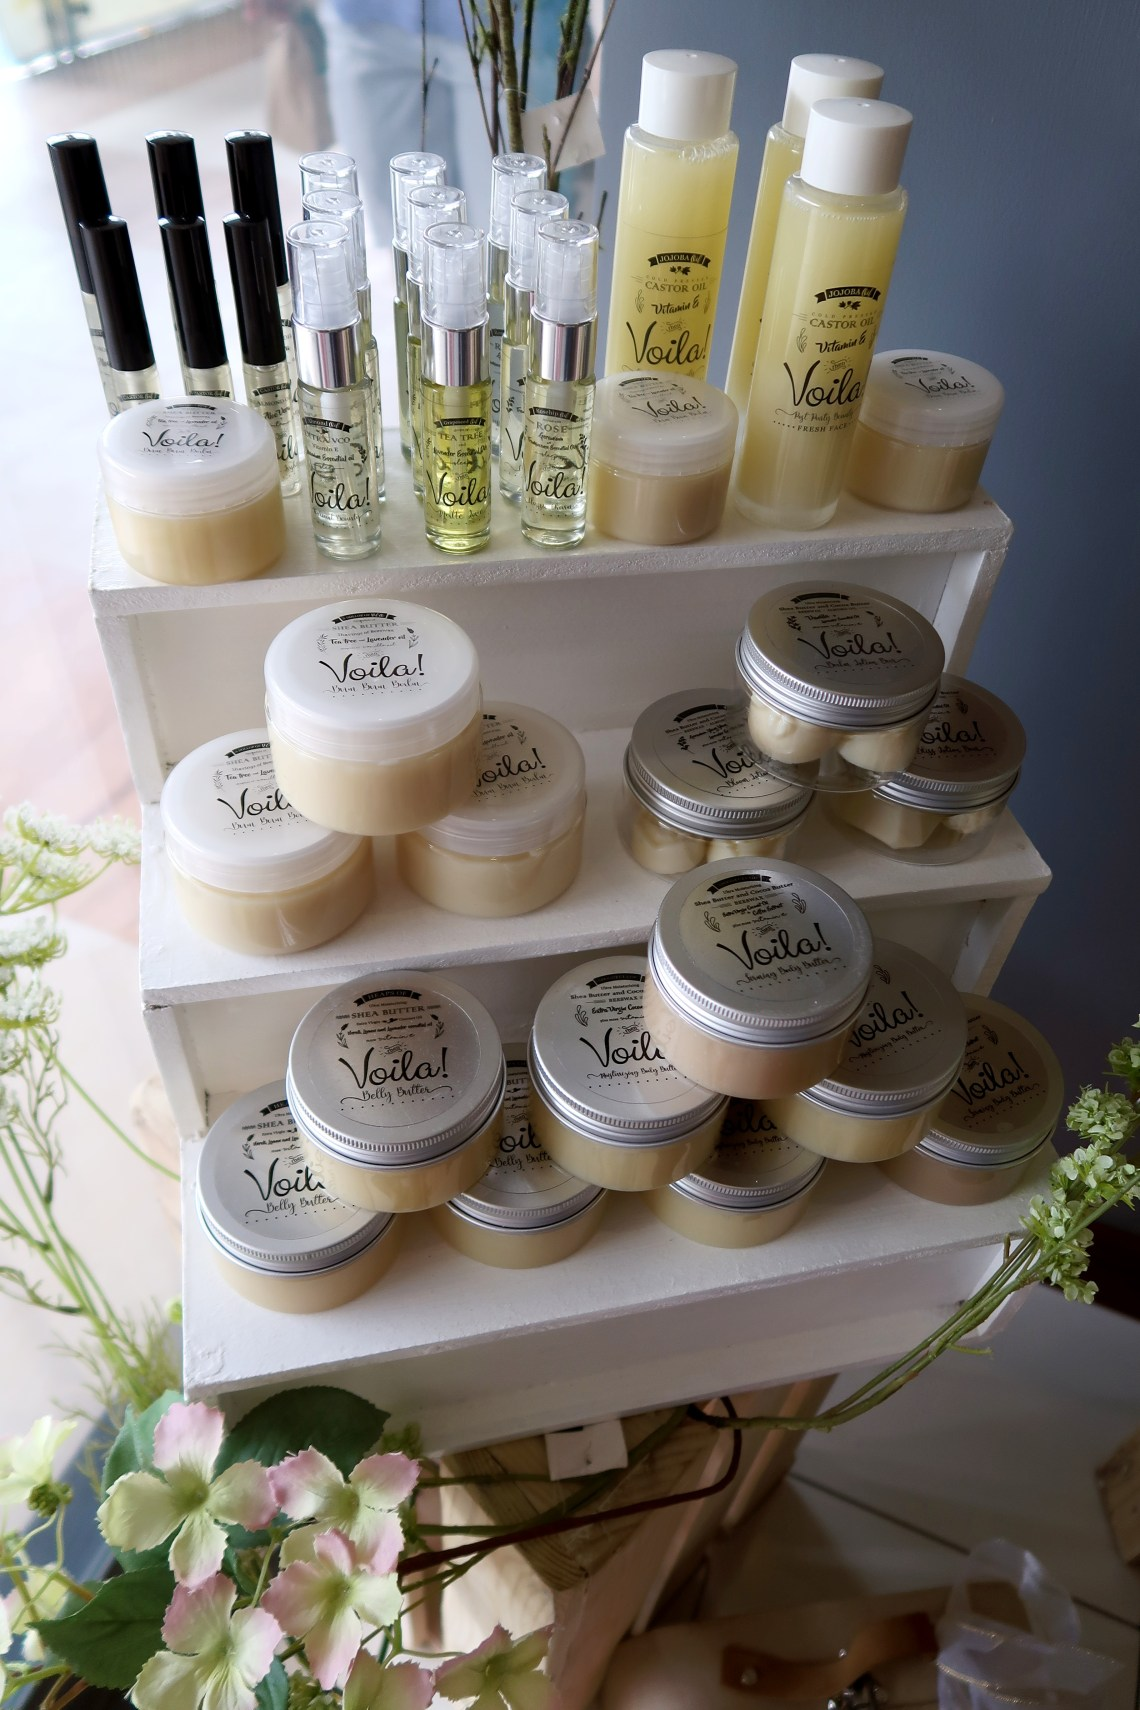 dyosathemomma: Voila products that promote organic living and healthy lifestyle